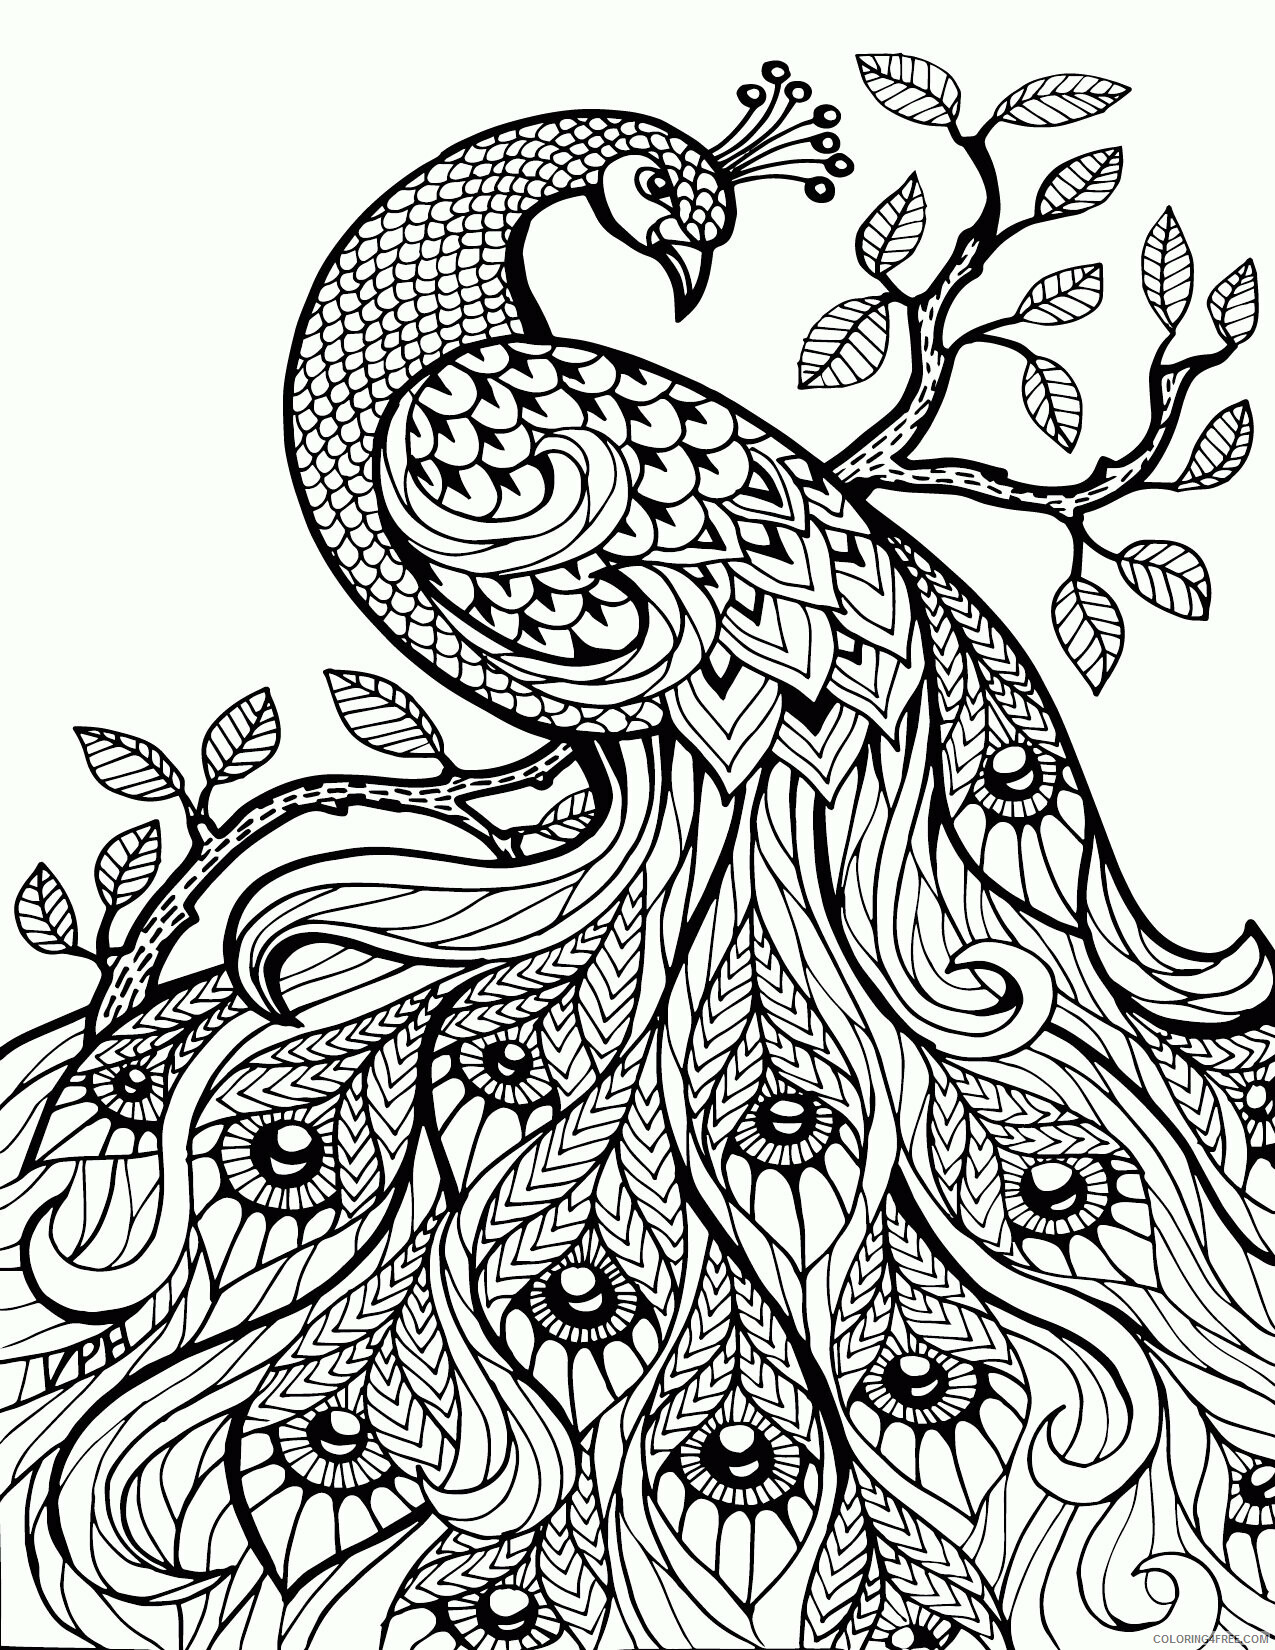 Awesome Design Mandala Coloring Pages Free Printable Sheets Monster Spongebob 2021 A Coloring4free Coloring4free Com